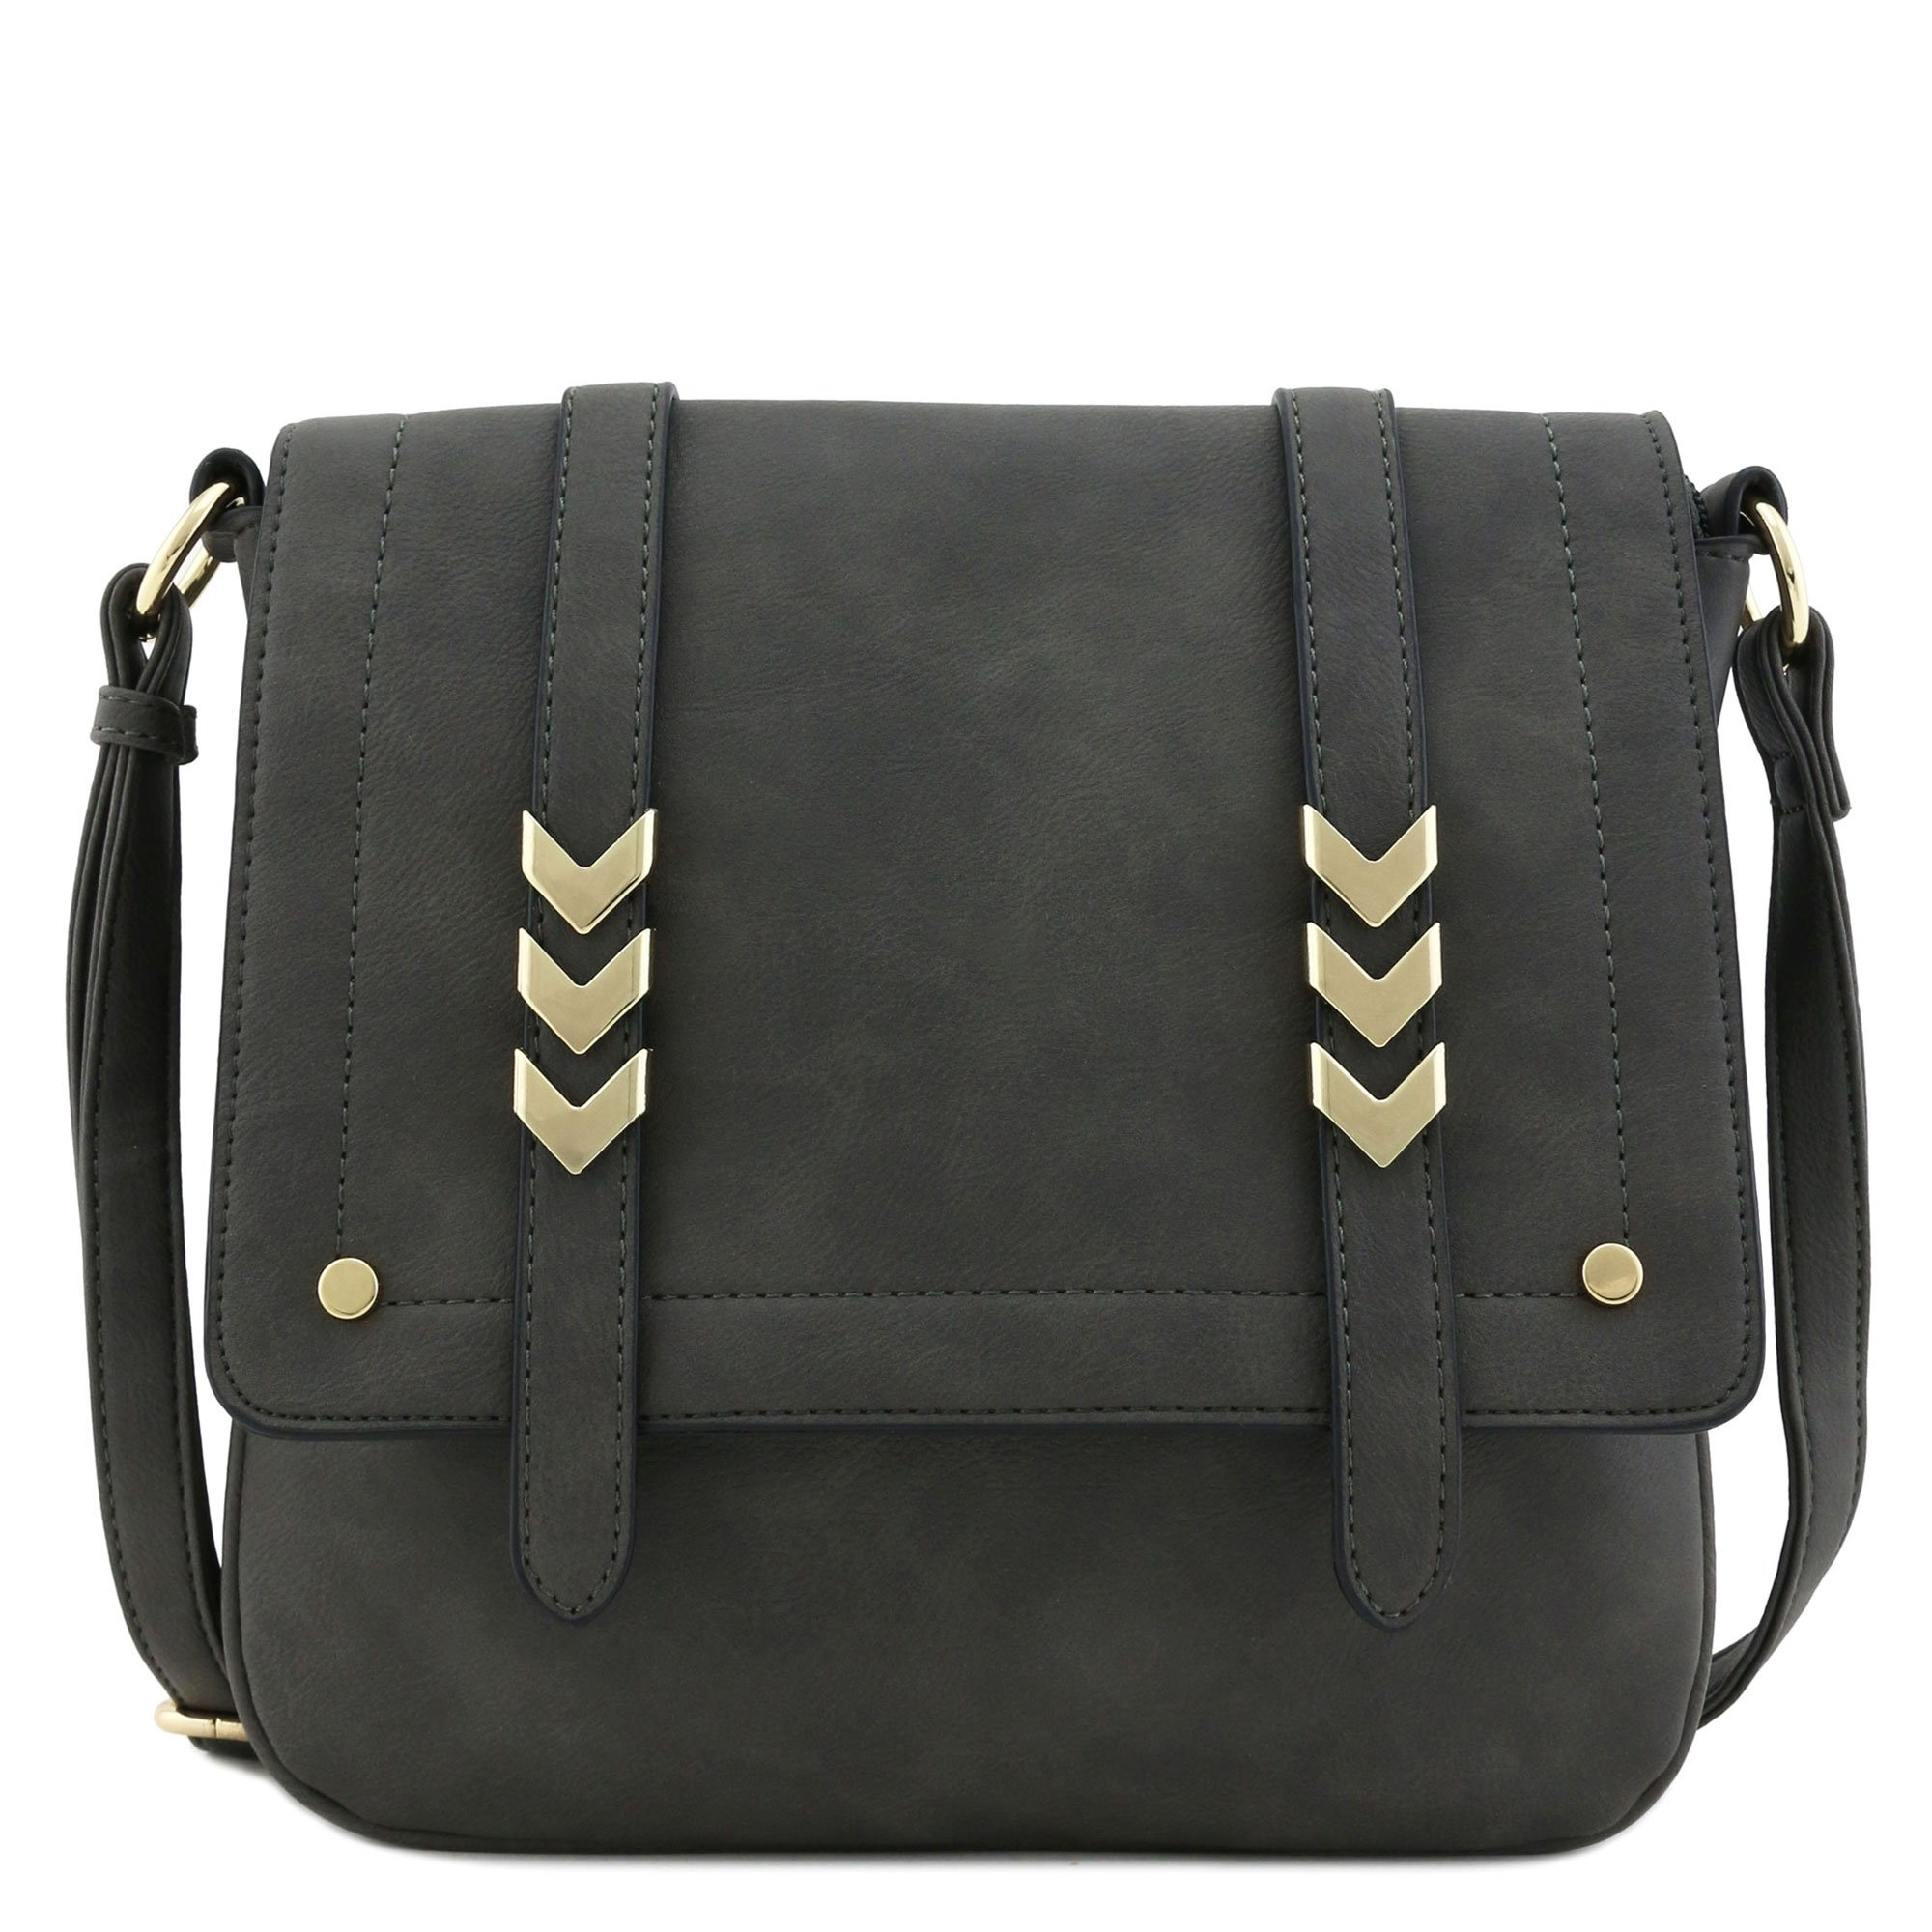 Double Compartment Large Flapover Crossbody Bag (Charcoal Grey)